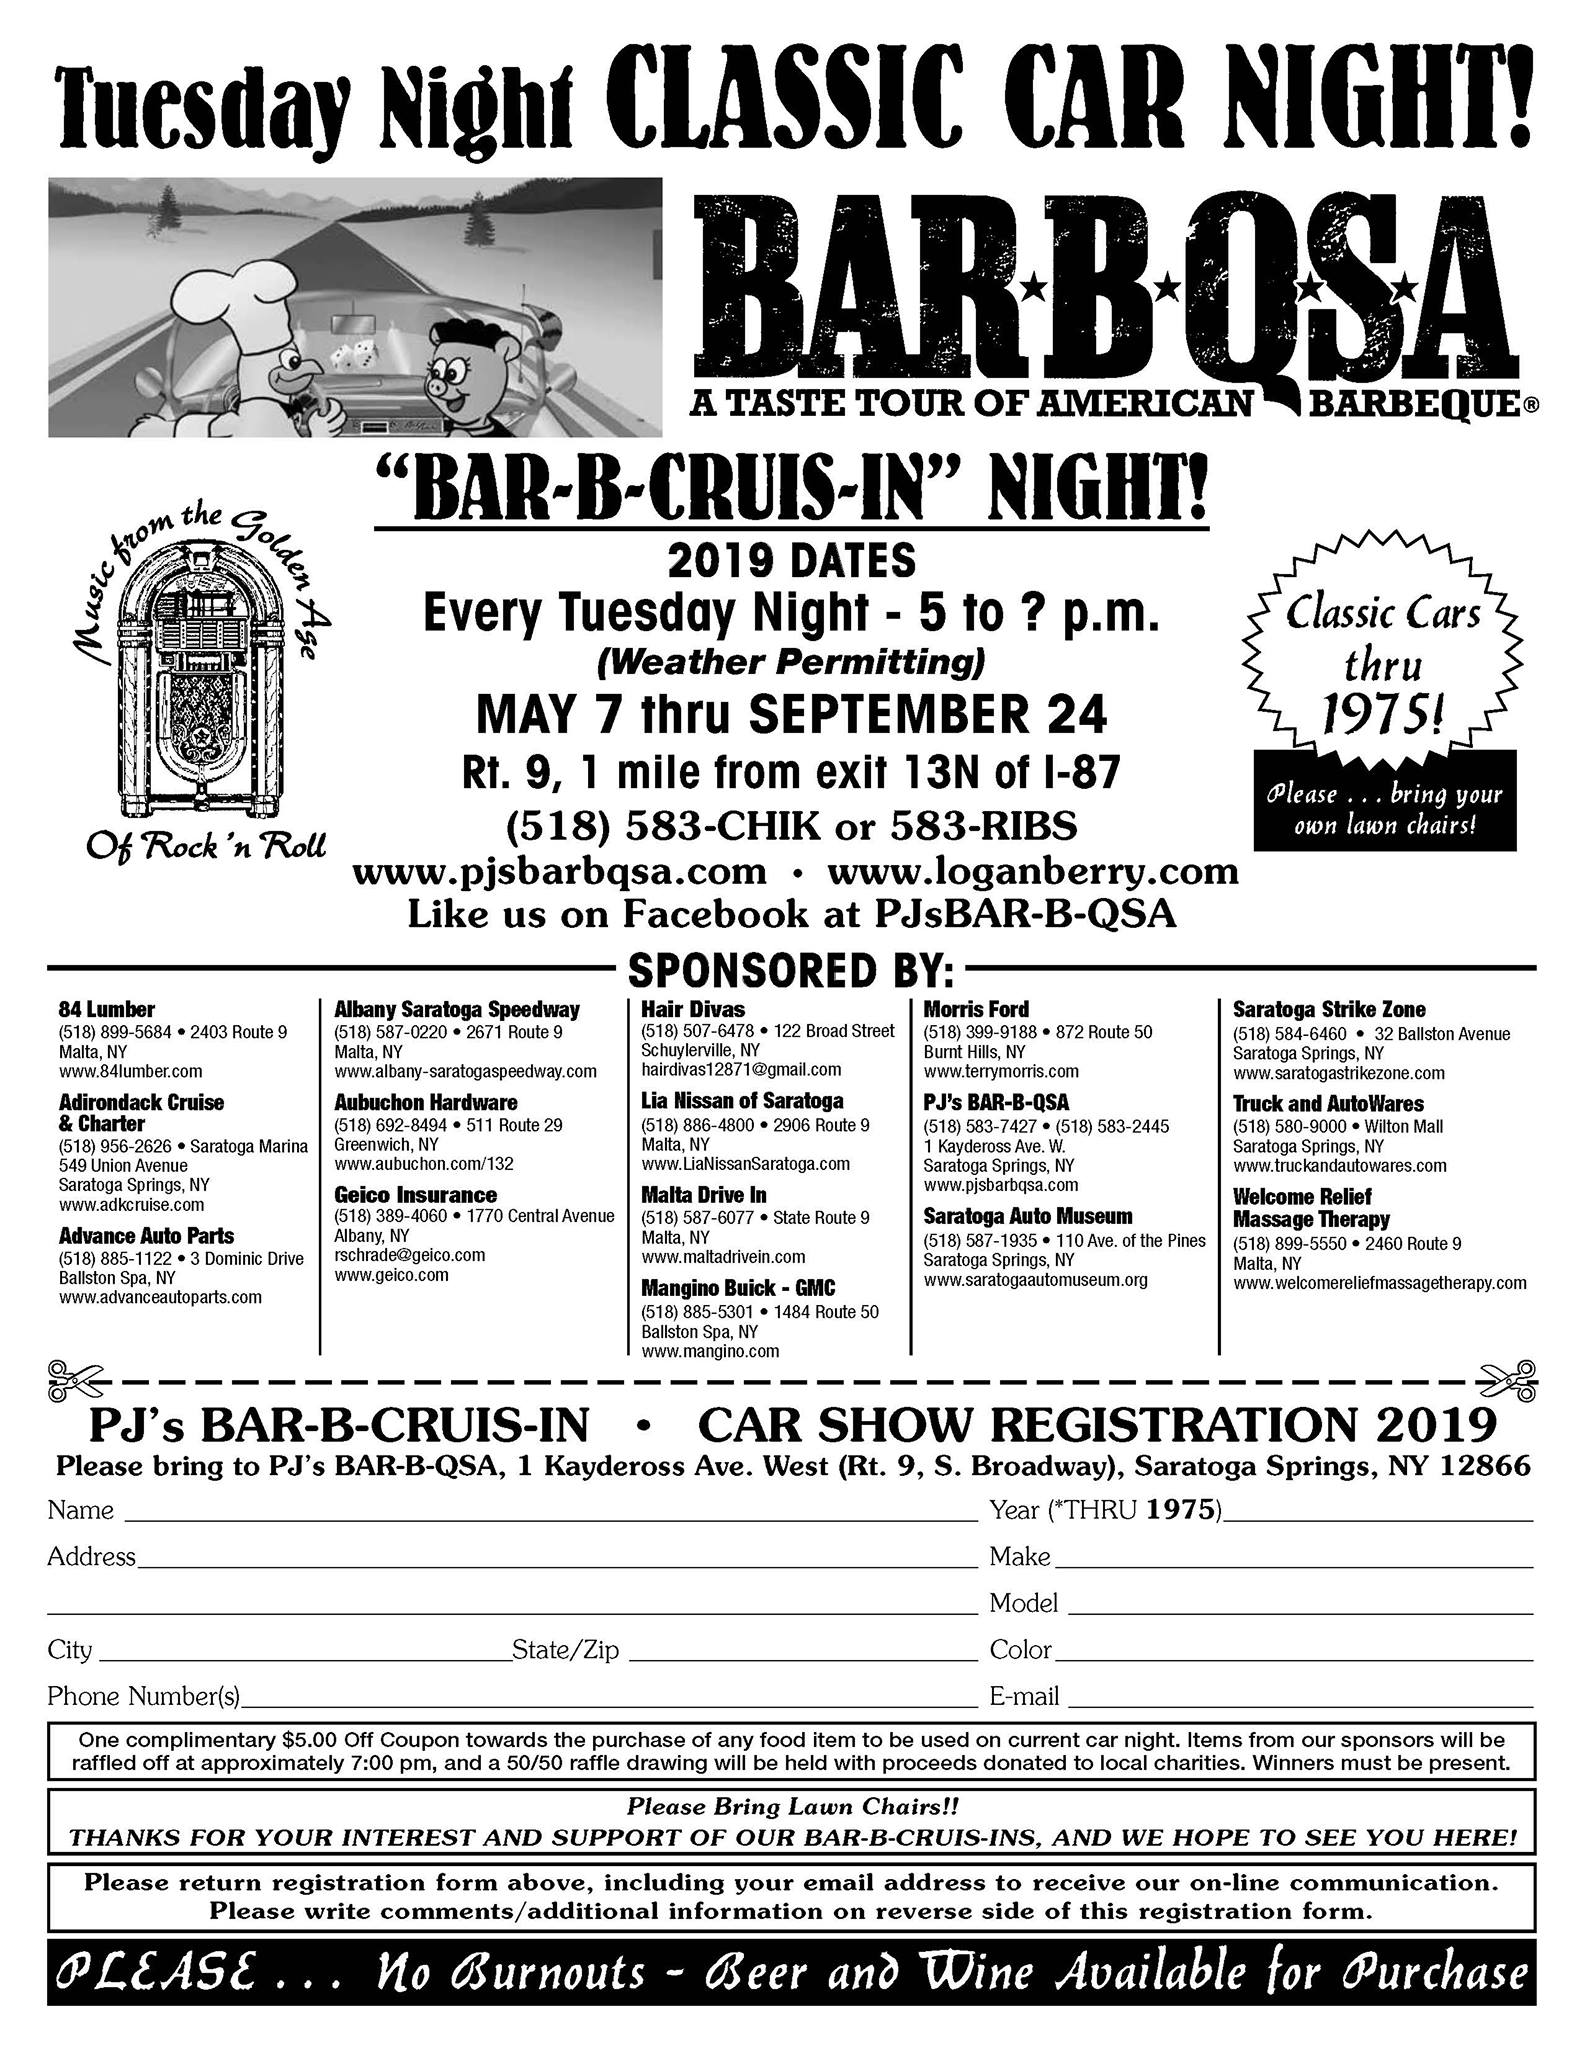 PJ's Bar-B-Cruis-In Classic Car Night 2019 @ PJ's BAR-B-QSA